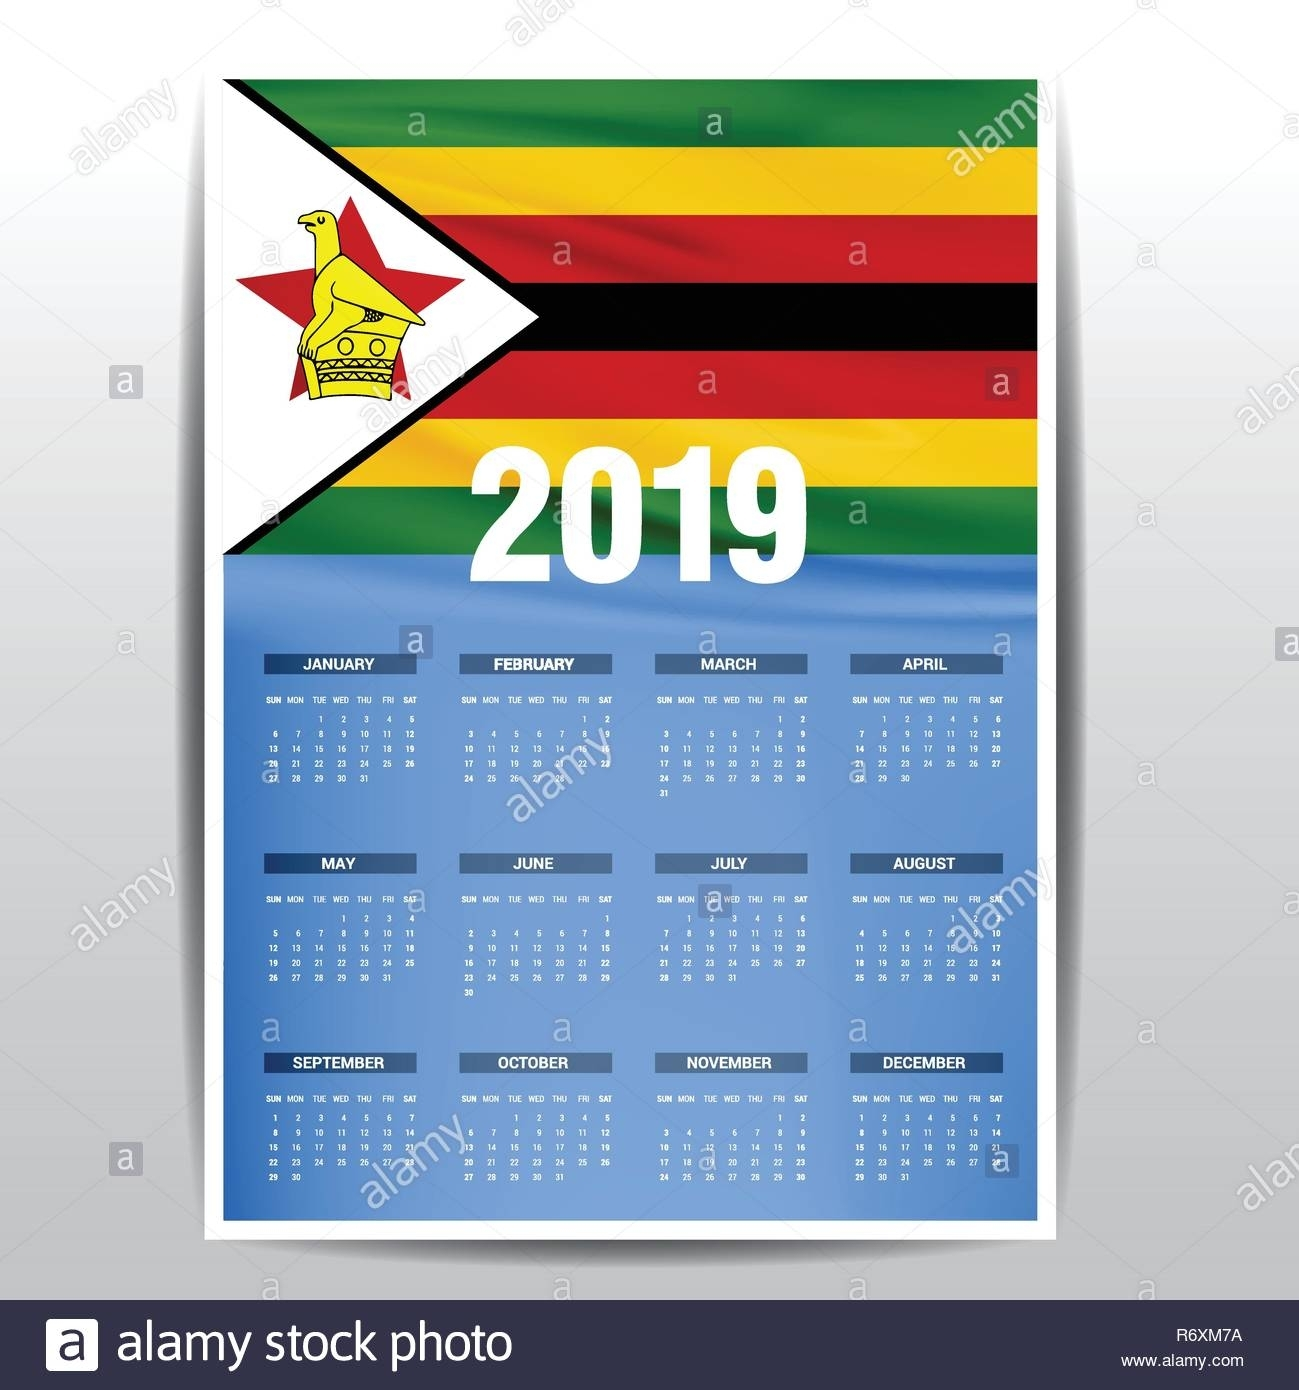 Get Zimbabwe Calendar With Holidays